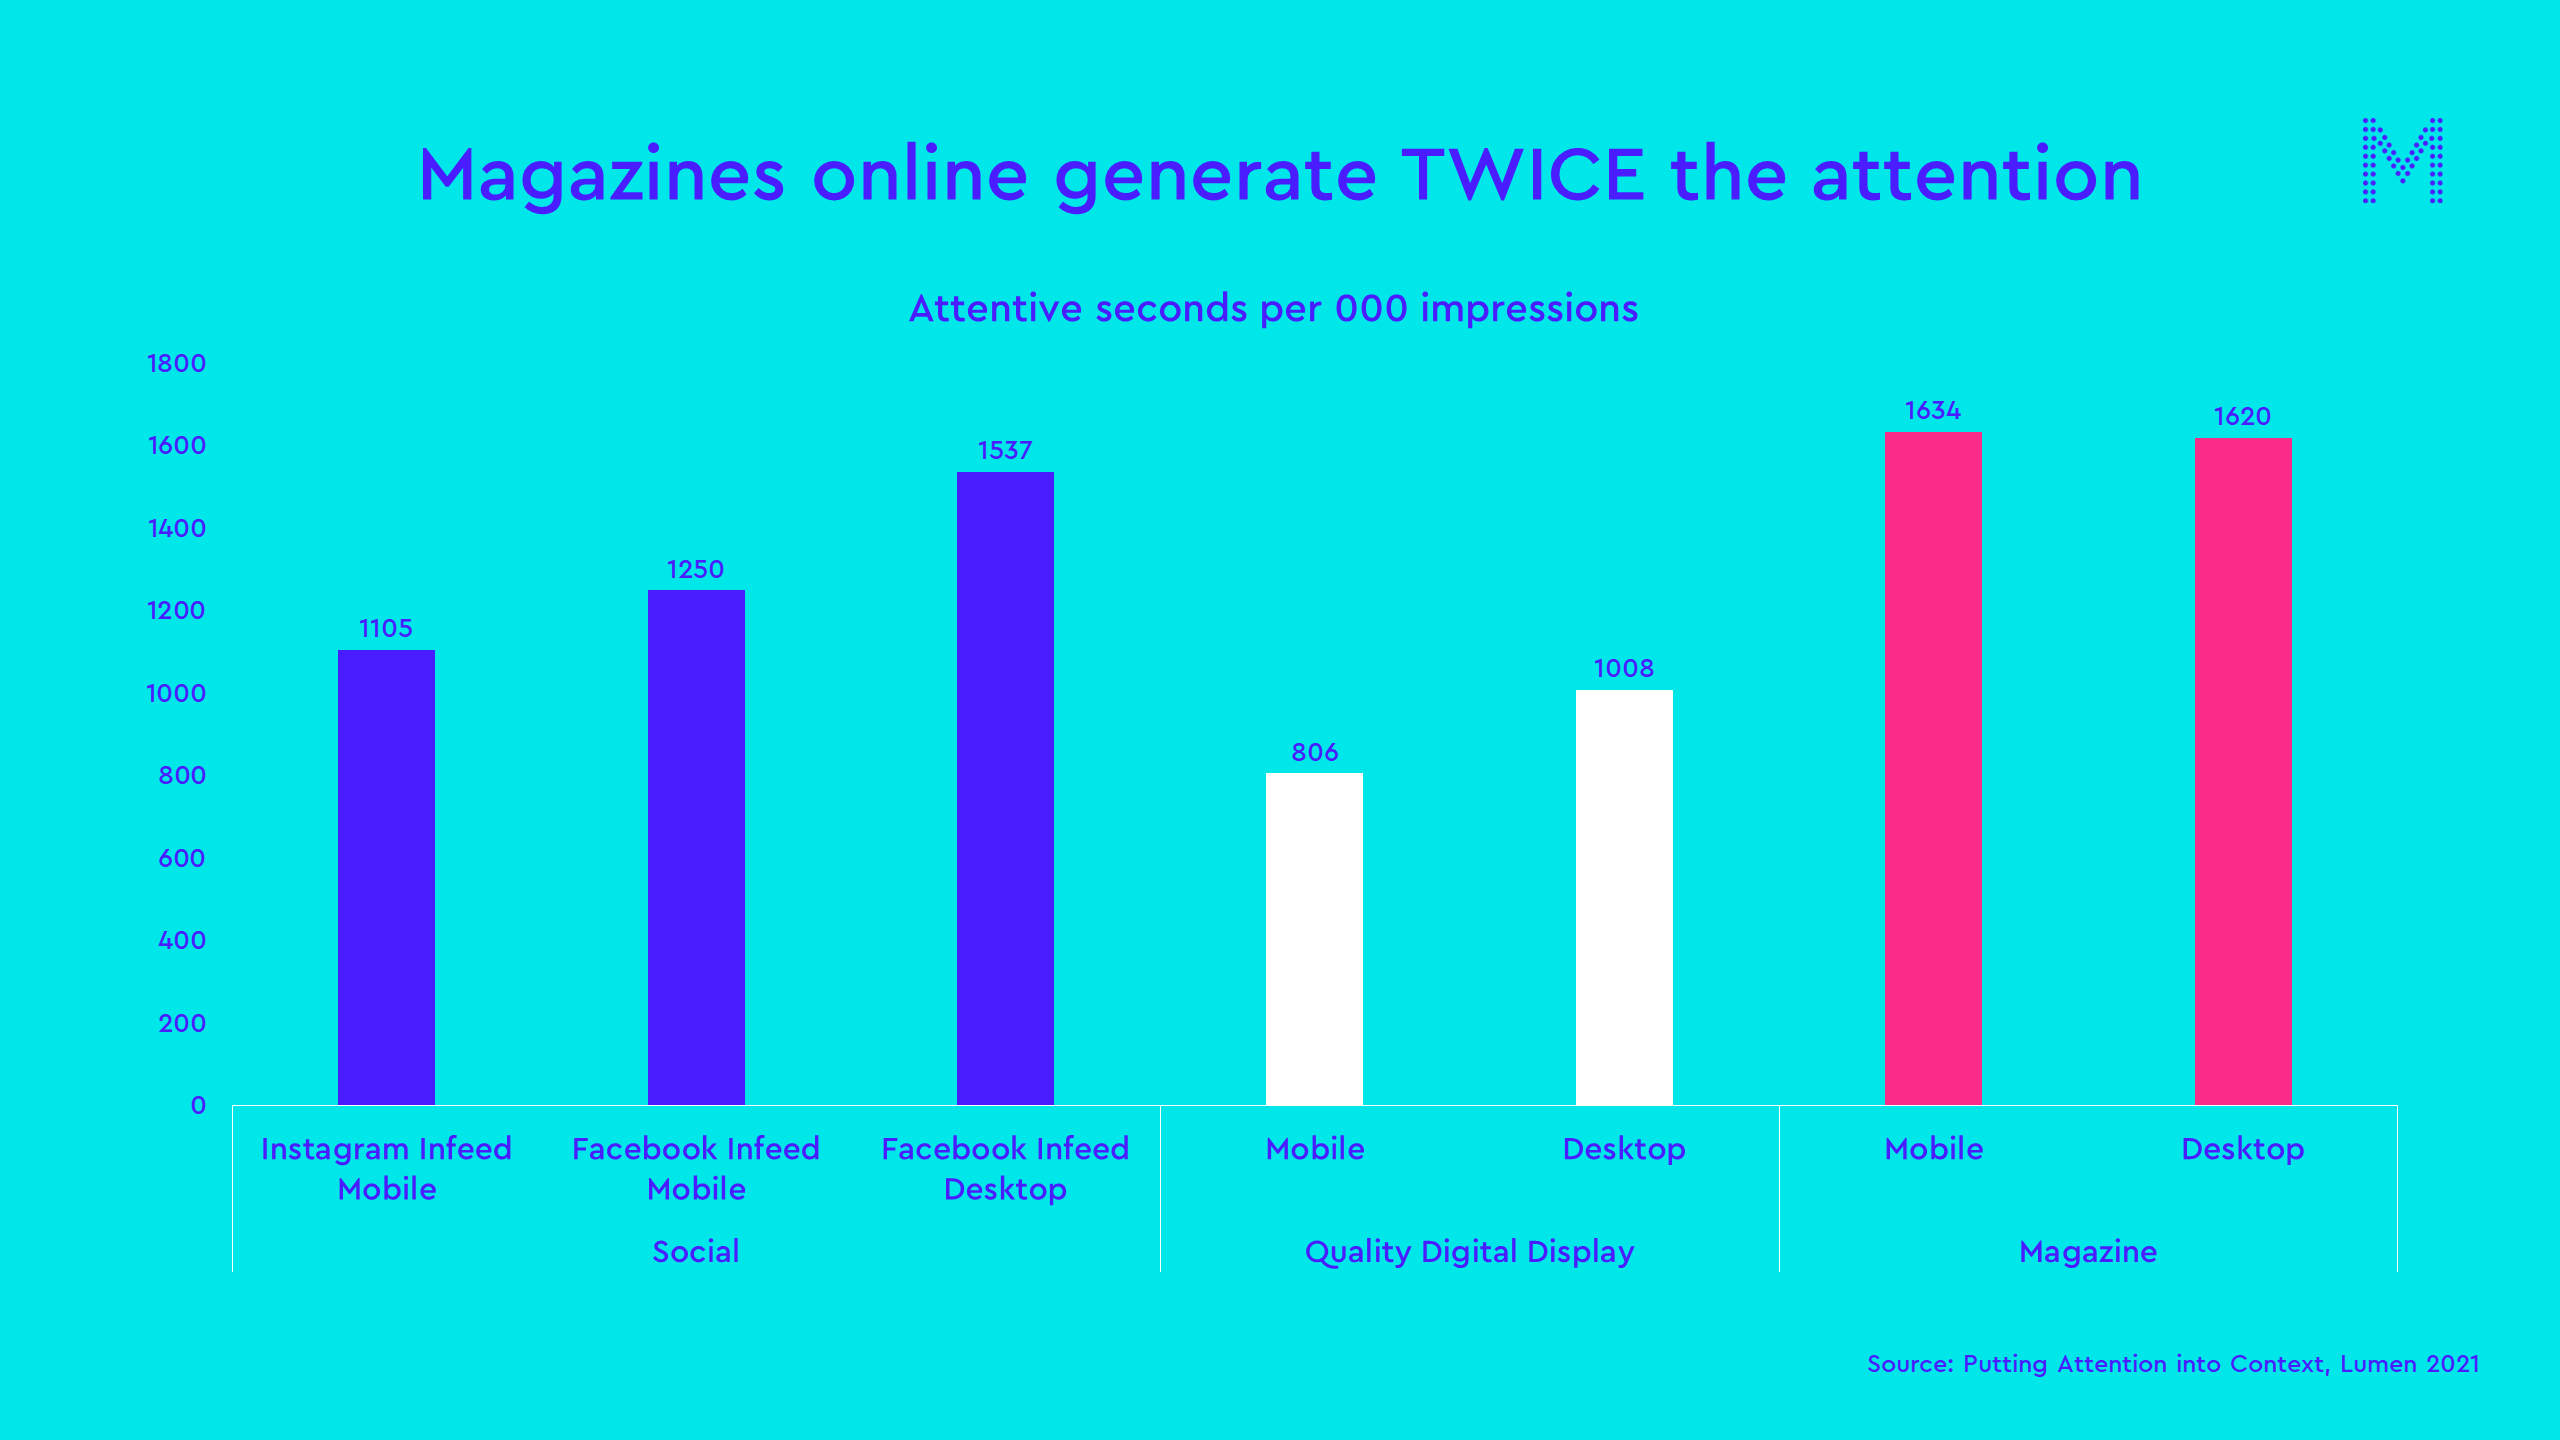 Magazines online generate twice the attention